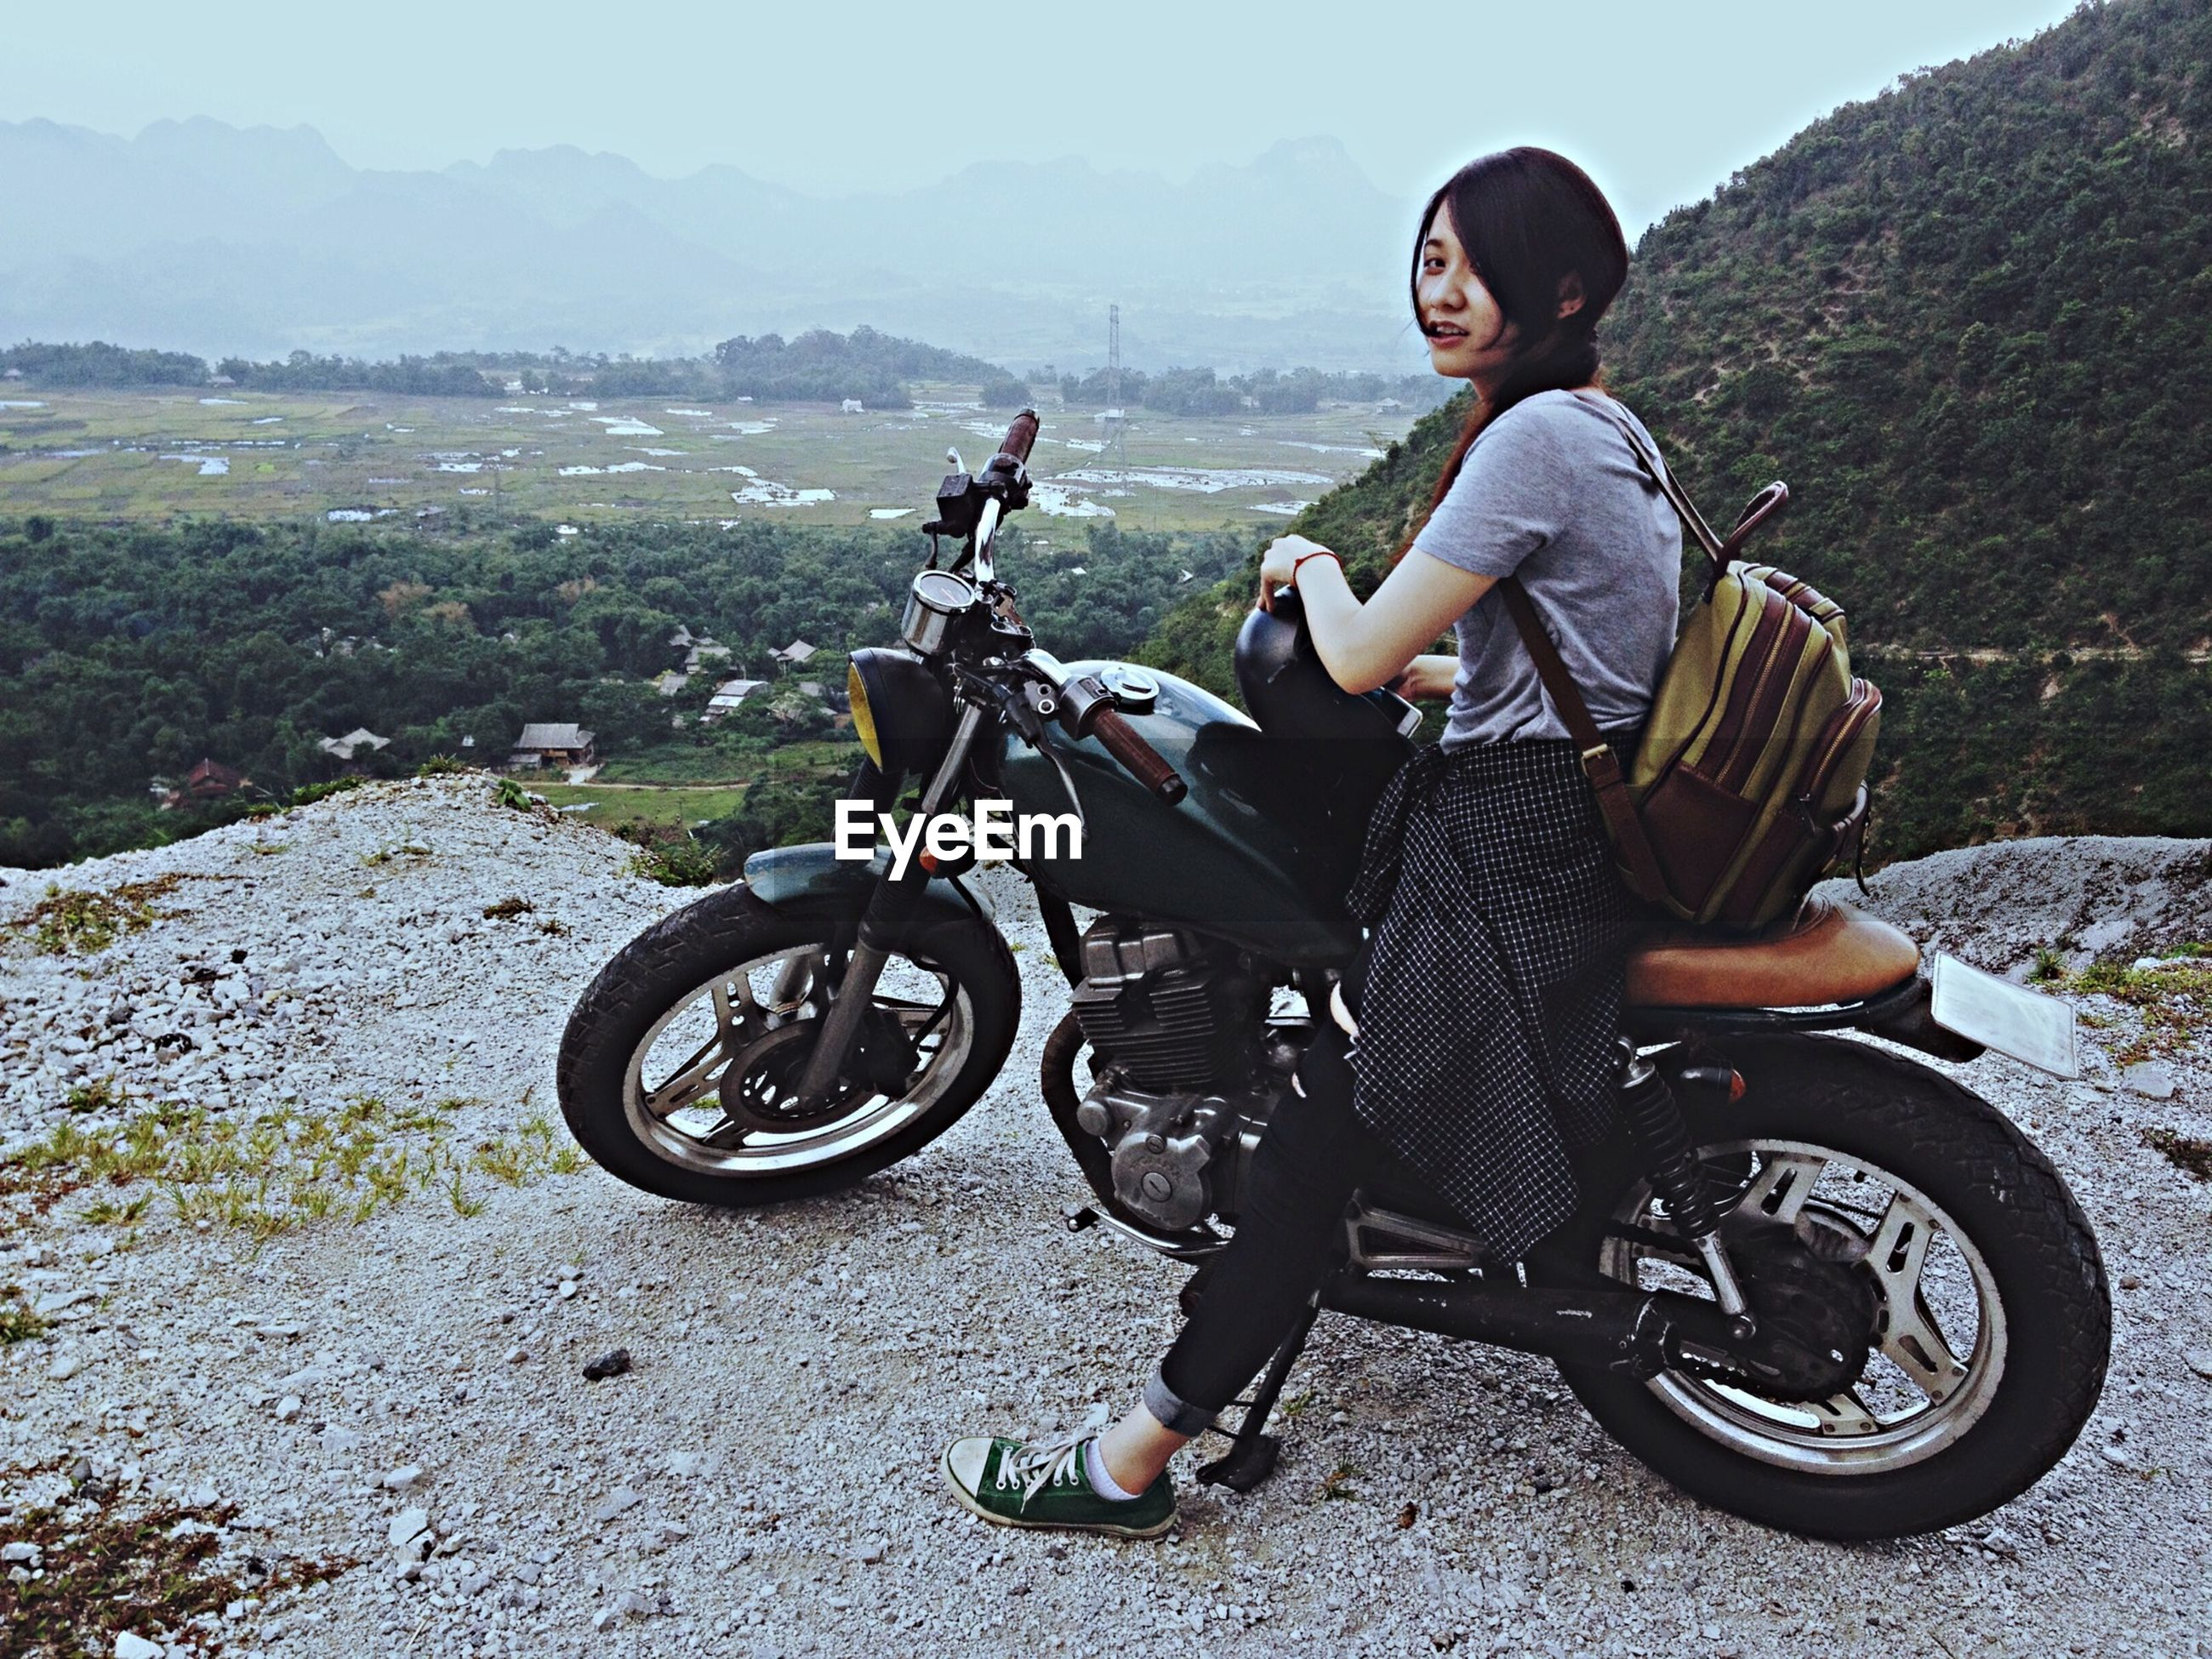 bicycle, mode of transport, transportation, land vehicle, lifestyles, leisure activity, full length, riding, casual clothing, mountain, side view, cycling, travel, men, day, outdoors, sunlight, motorcycle